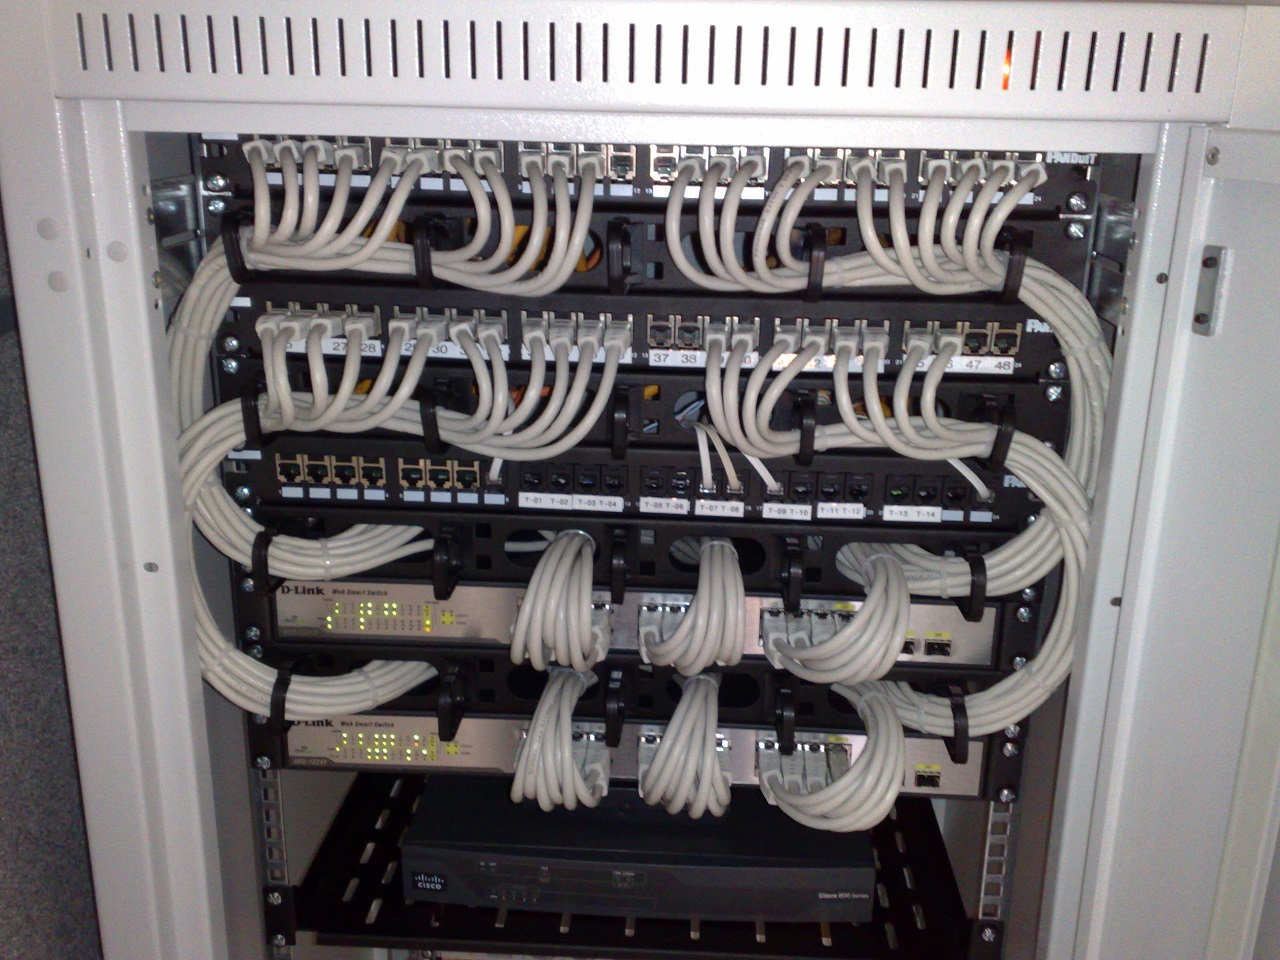 Patch Panel Wikipedia Wiring Bix Block A Couple Of Managed Gigabit Ethernet Rackmount Switches Connected To The Ports On Few Panduit Panels Using Category 6 Cables All